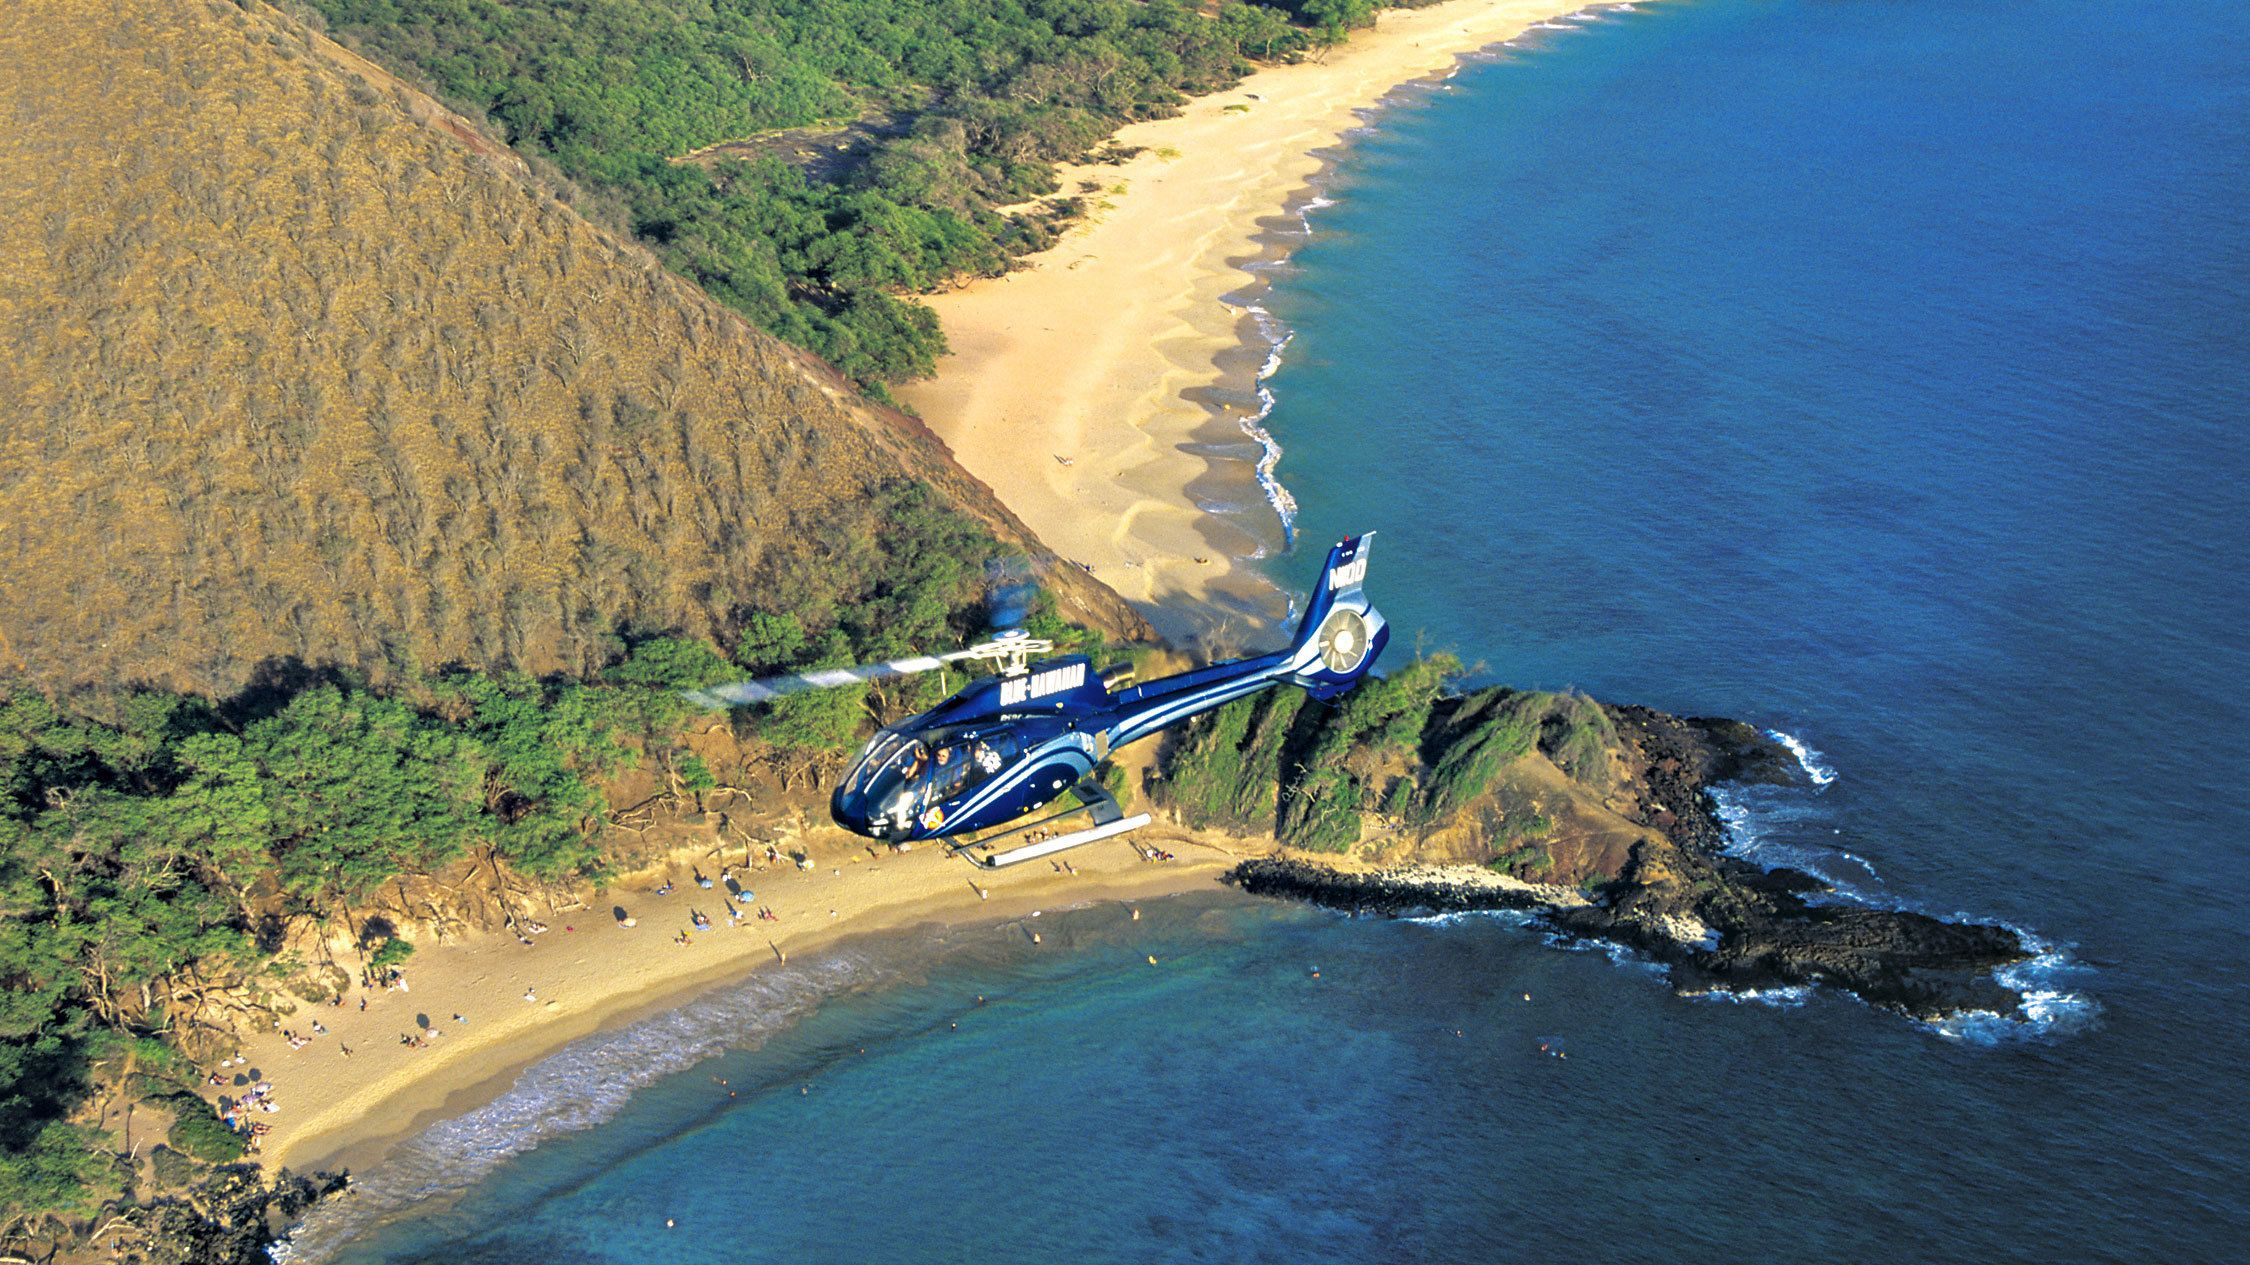 Shoreline of Northeast Maui in the Best of Maui Helicopter Tour